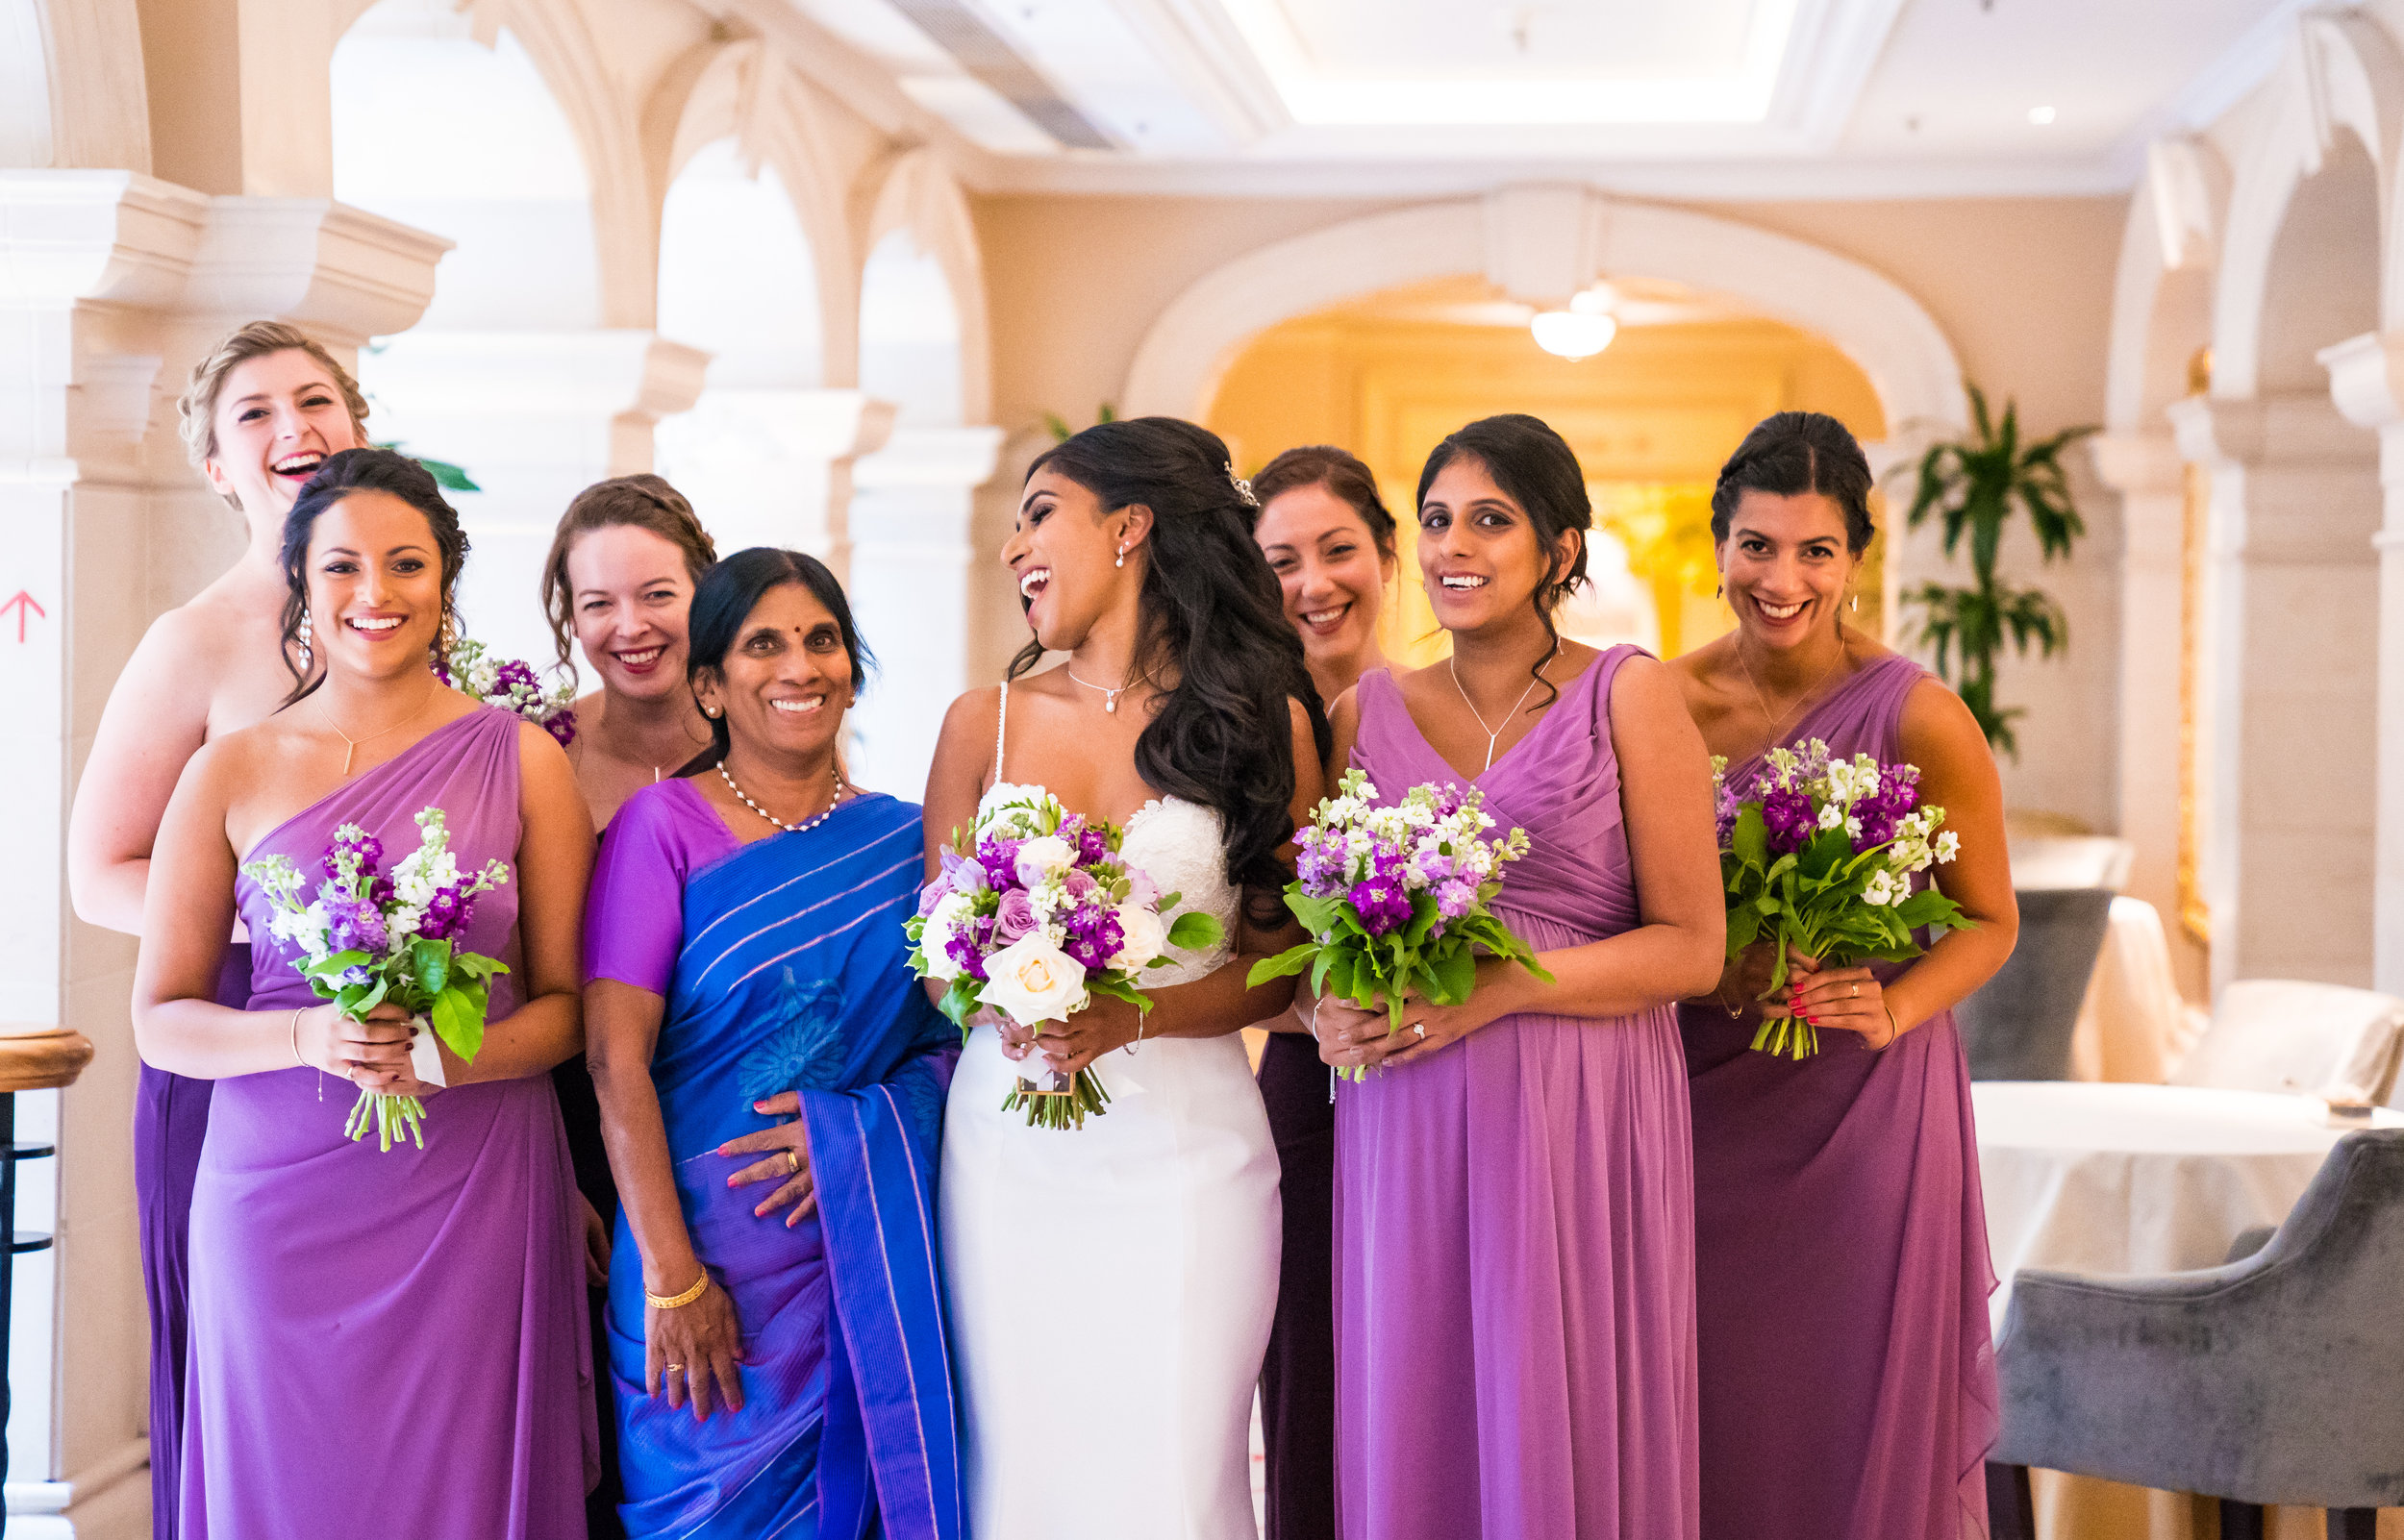 anglo-asian-hindu-civil-wedding-photography-videography-london-portrait-marylebone-old-town-hall-16